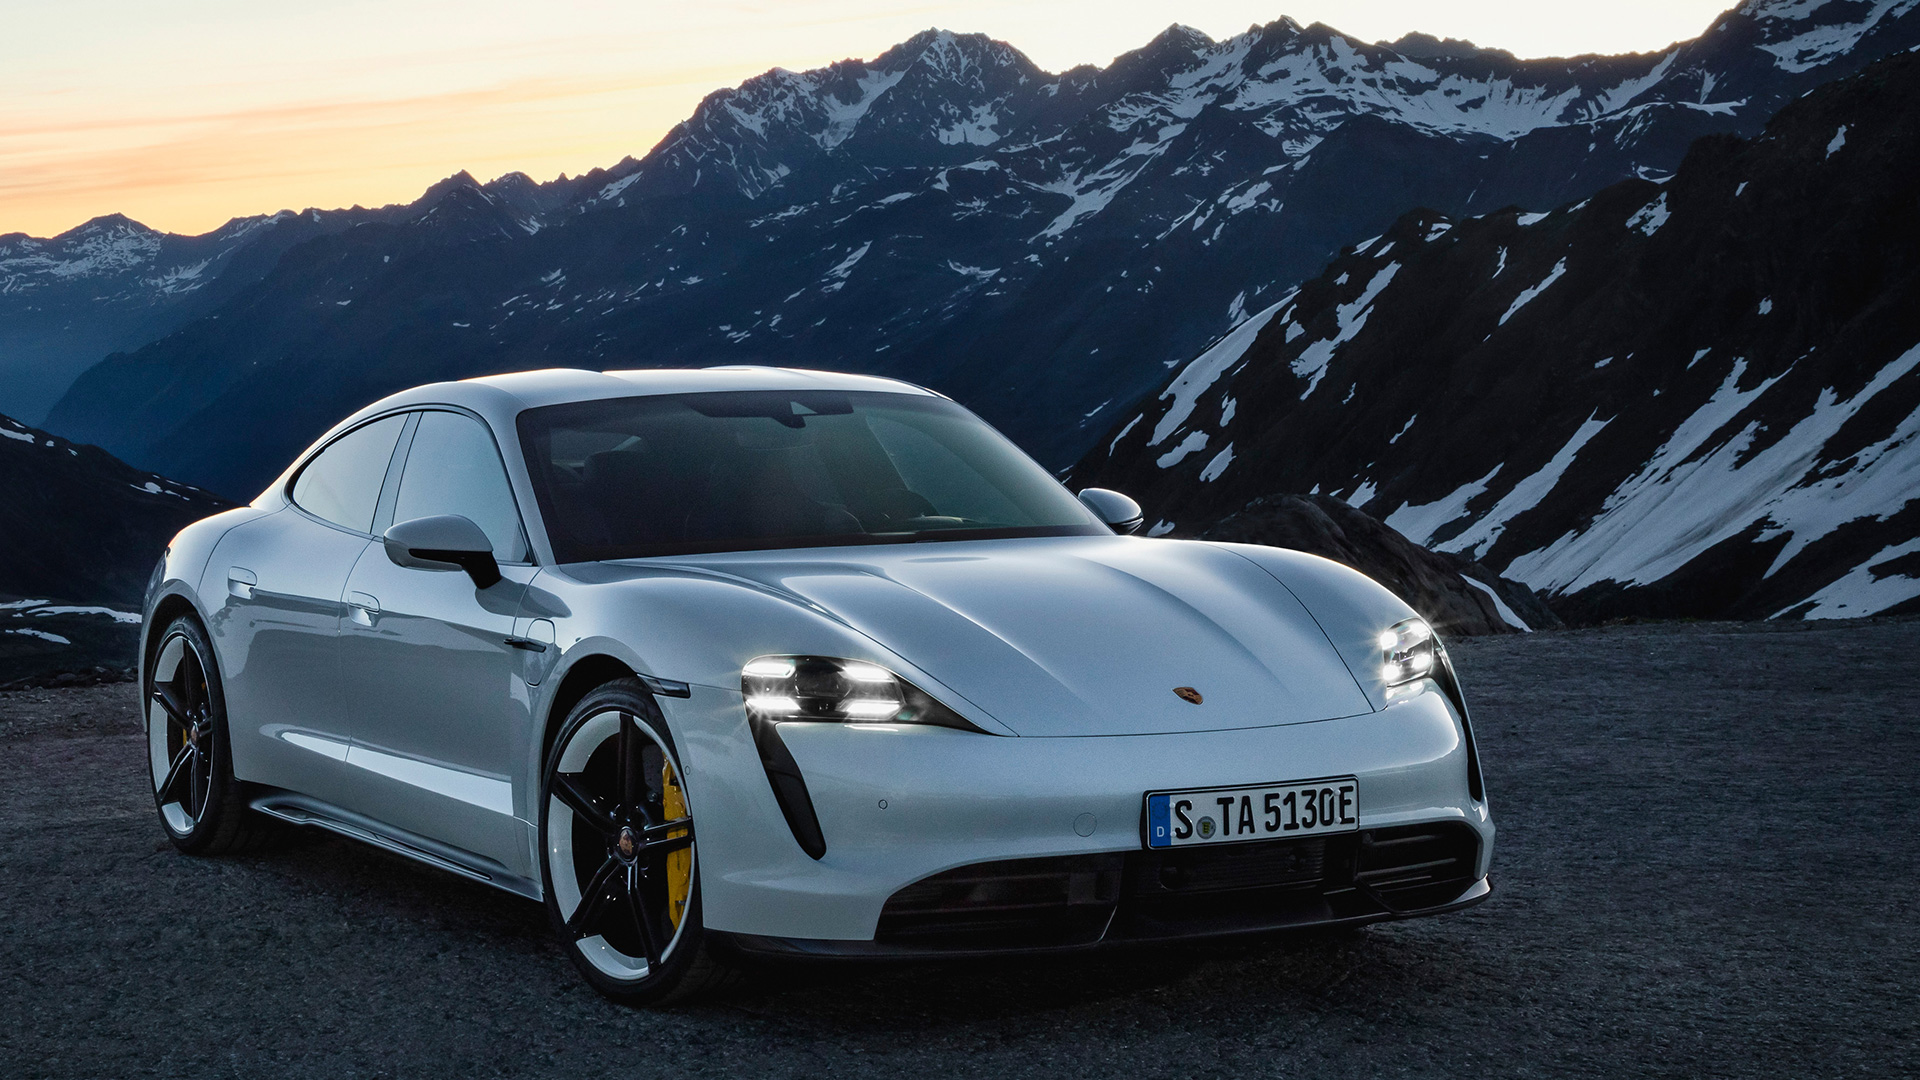 Porsche Taycan 2019 Turbo S Exterior Car Photos